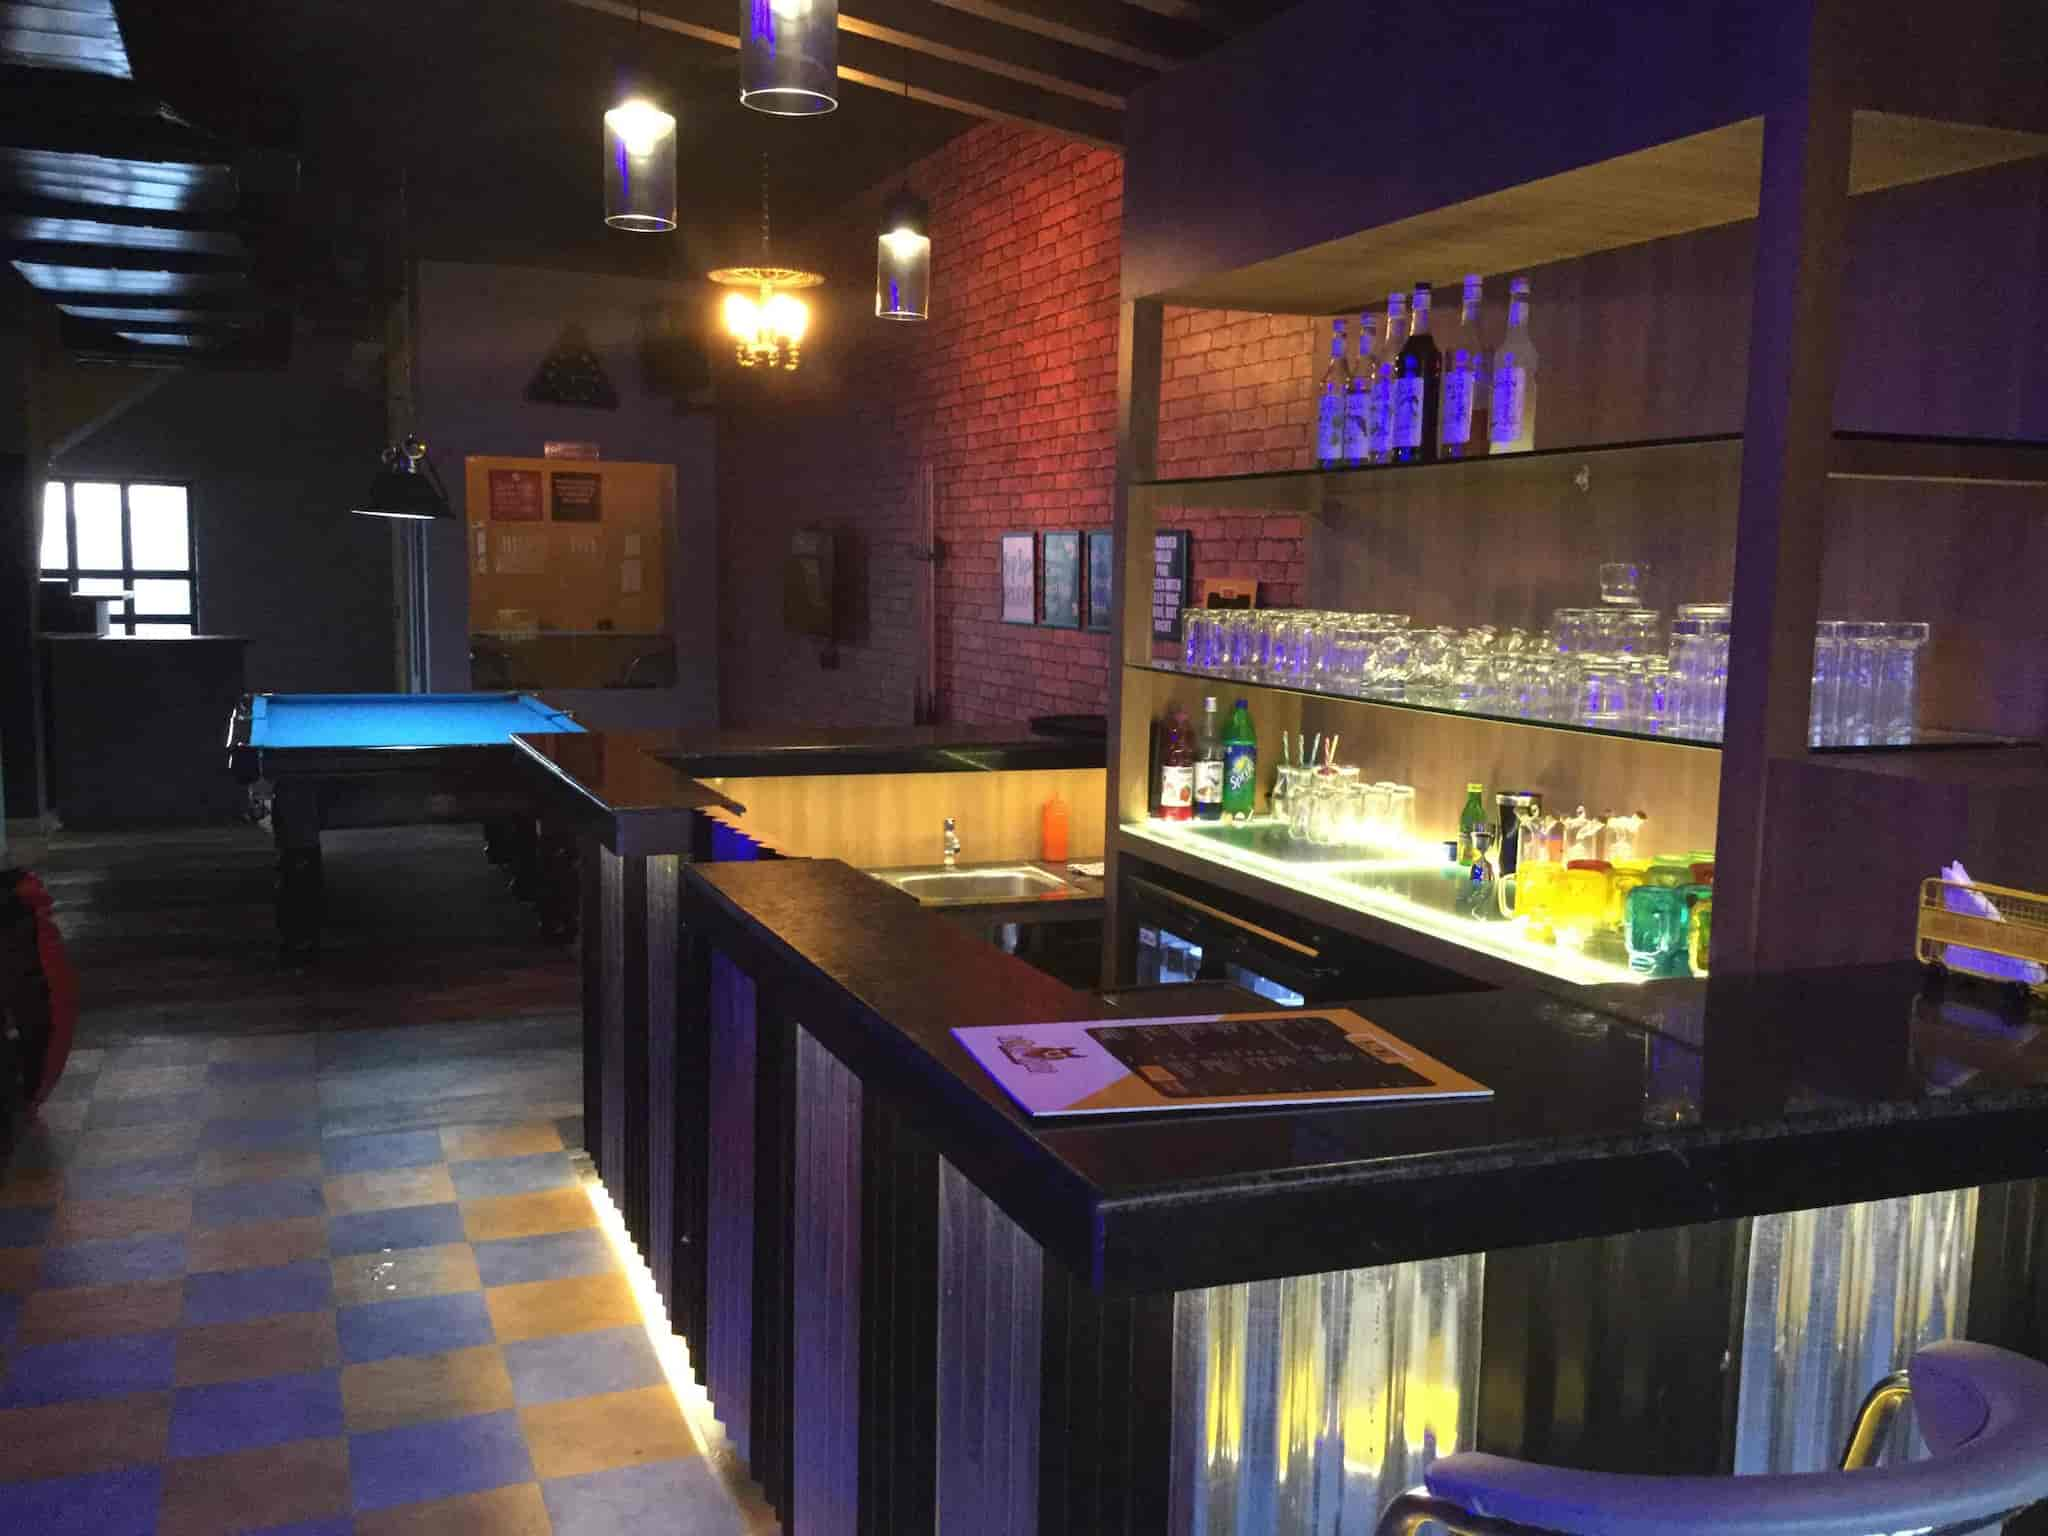 Wino wolf sports bar cafe sector 60 phase 3b 2 chandigarh wino wolf sports bar cafe sector 60 phase 3b 2 chandigarh sports bar justdial aloadofball Gallery